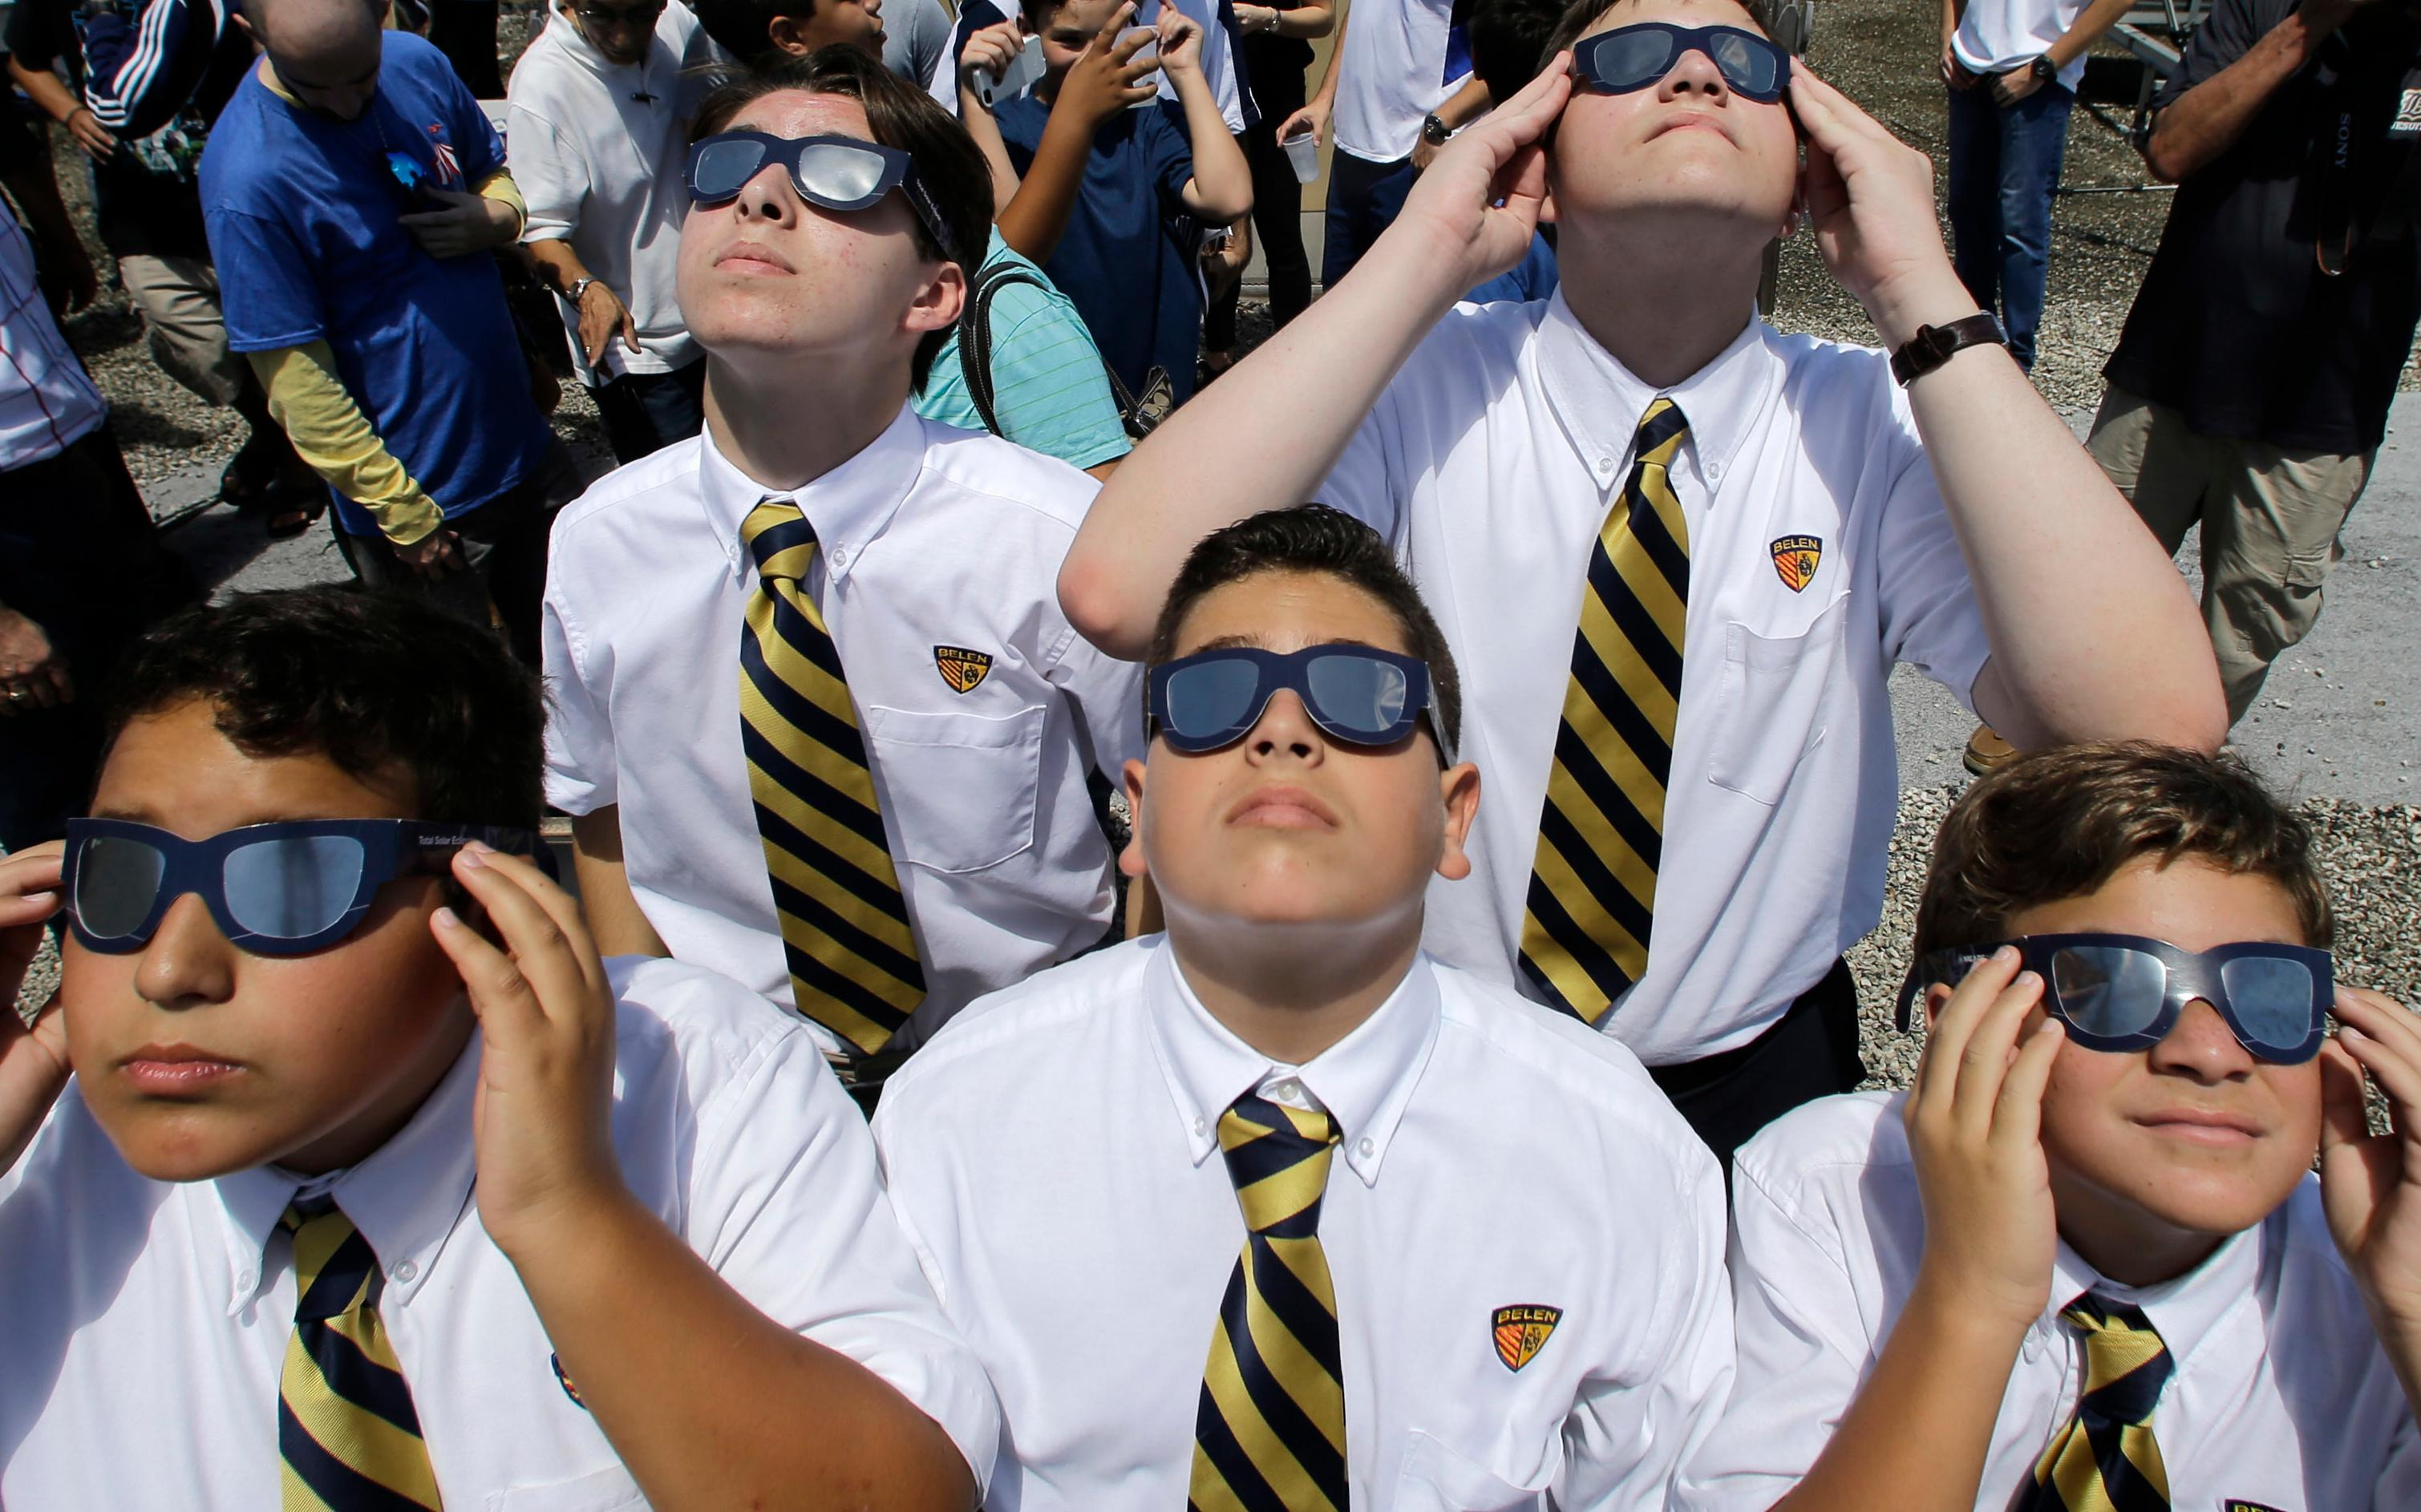 Belen Jesuit Preparatory School students look through solar glasses as they watch the eclipse, Monday, Aug. 21, 2017, in Miami. (AP Photo/Alan Diaz)